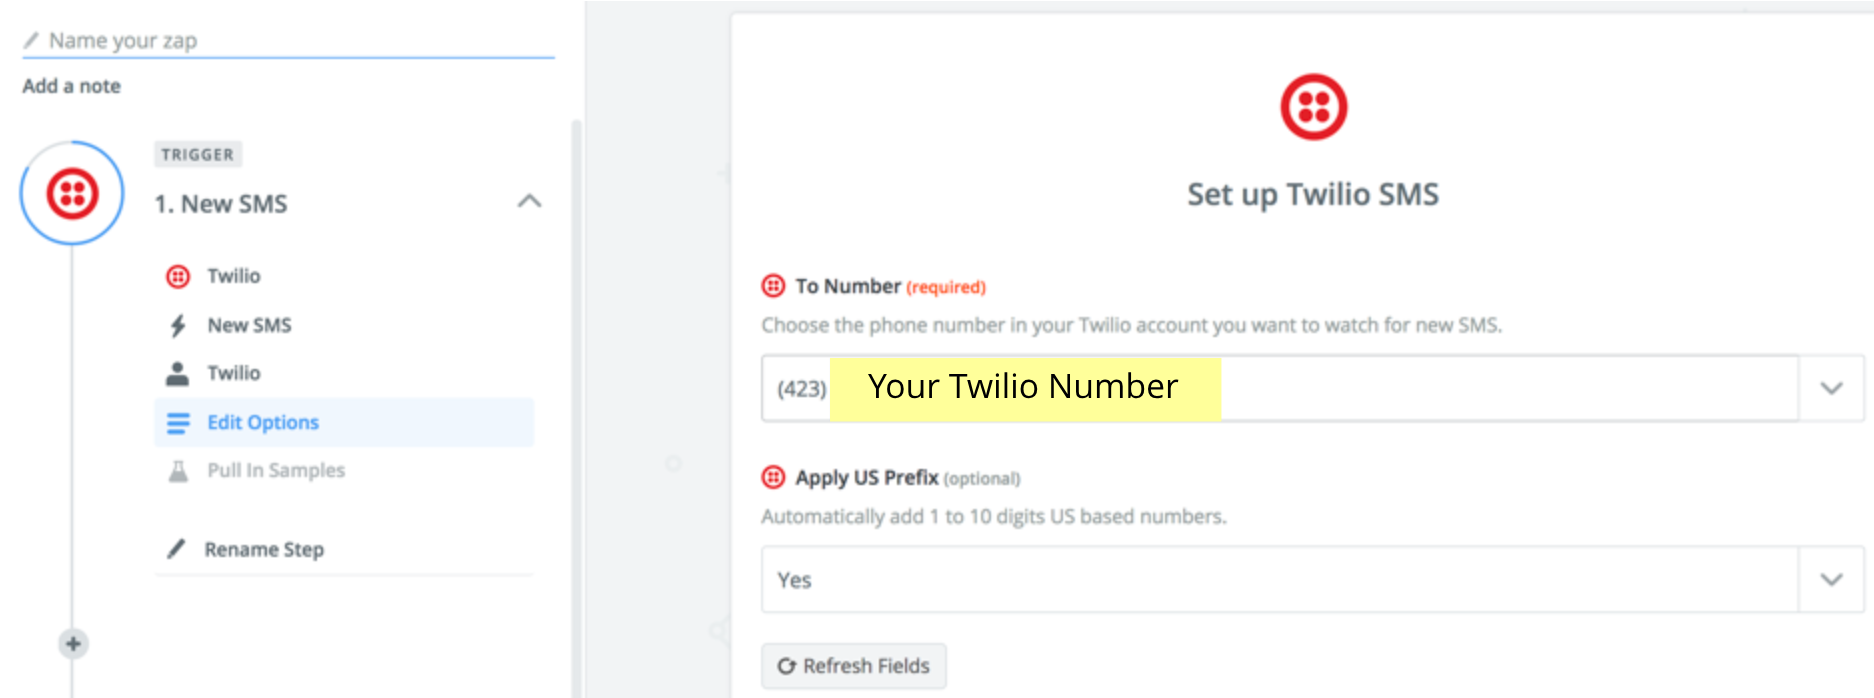 Set up Twilio SMS